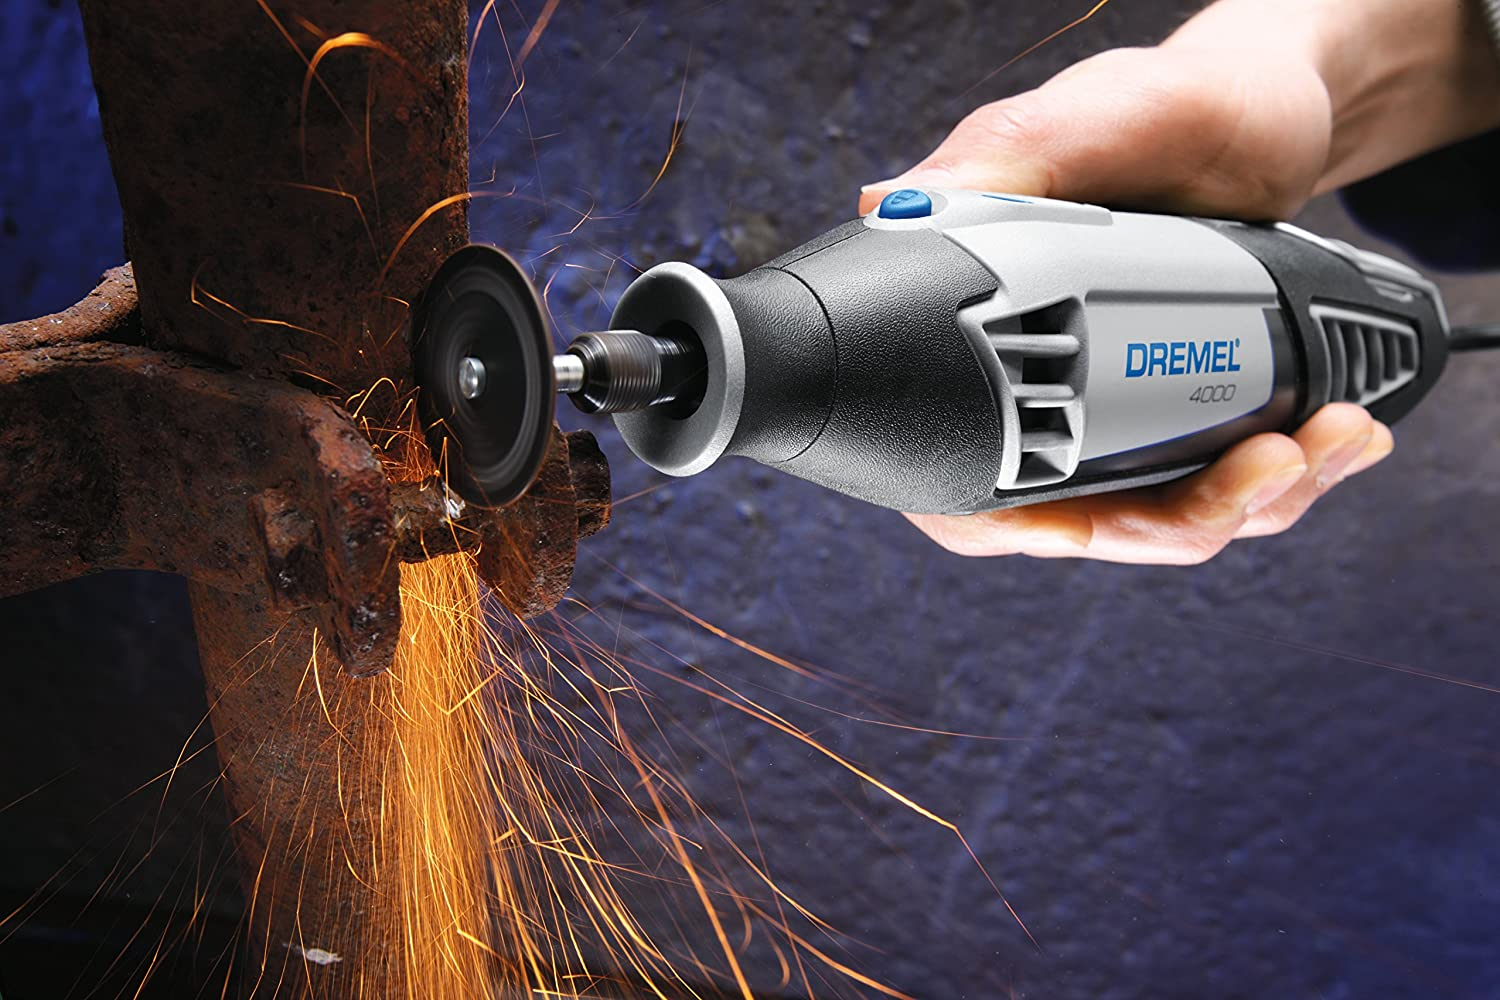 Cut Metal using rotary tool with grinding disk